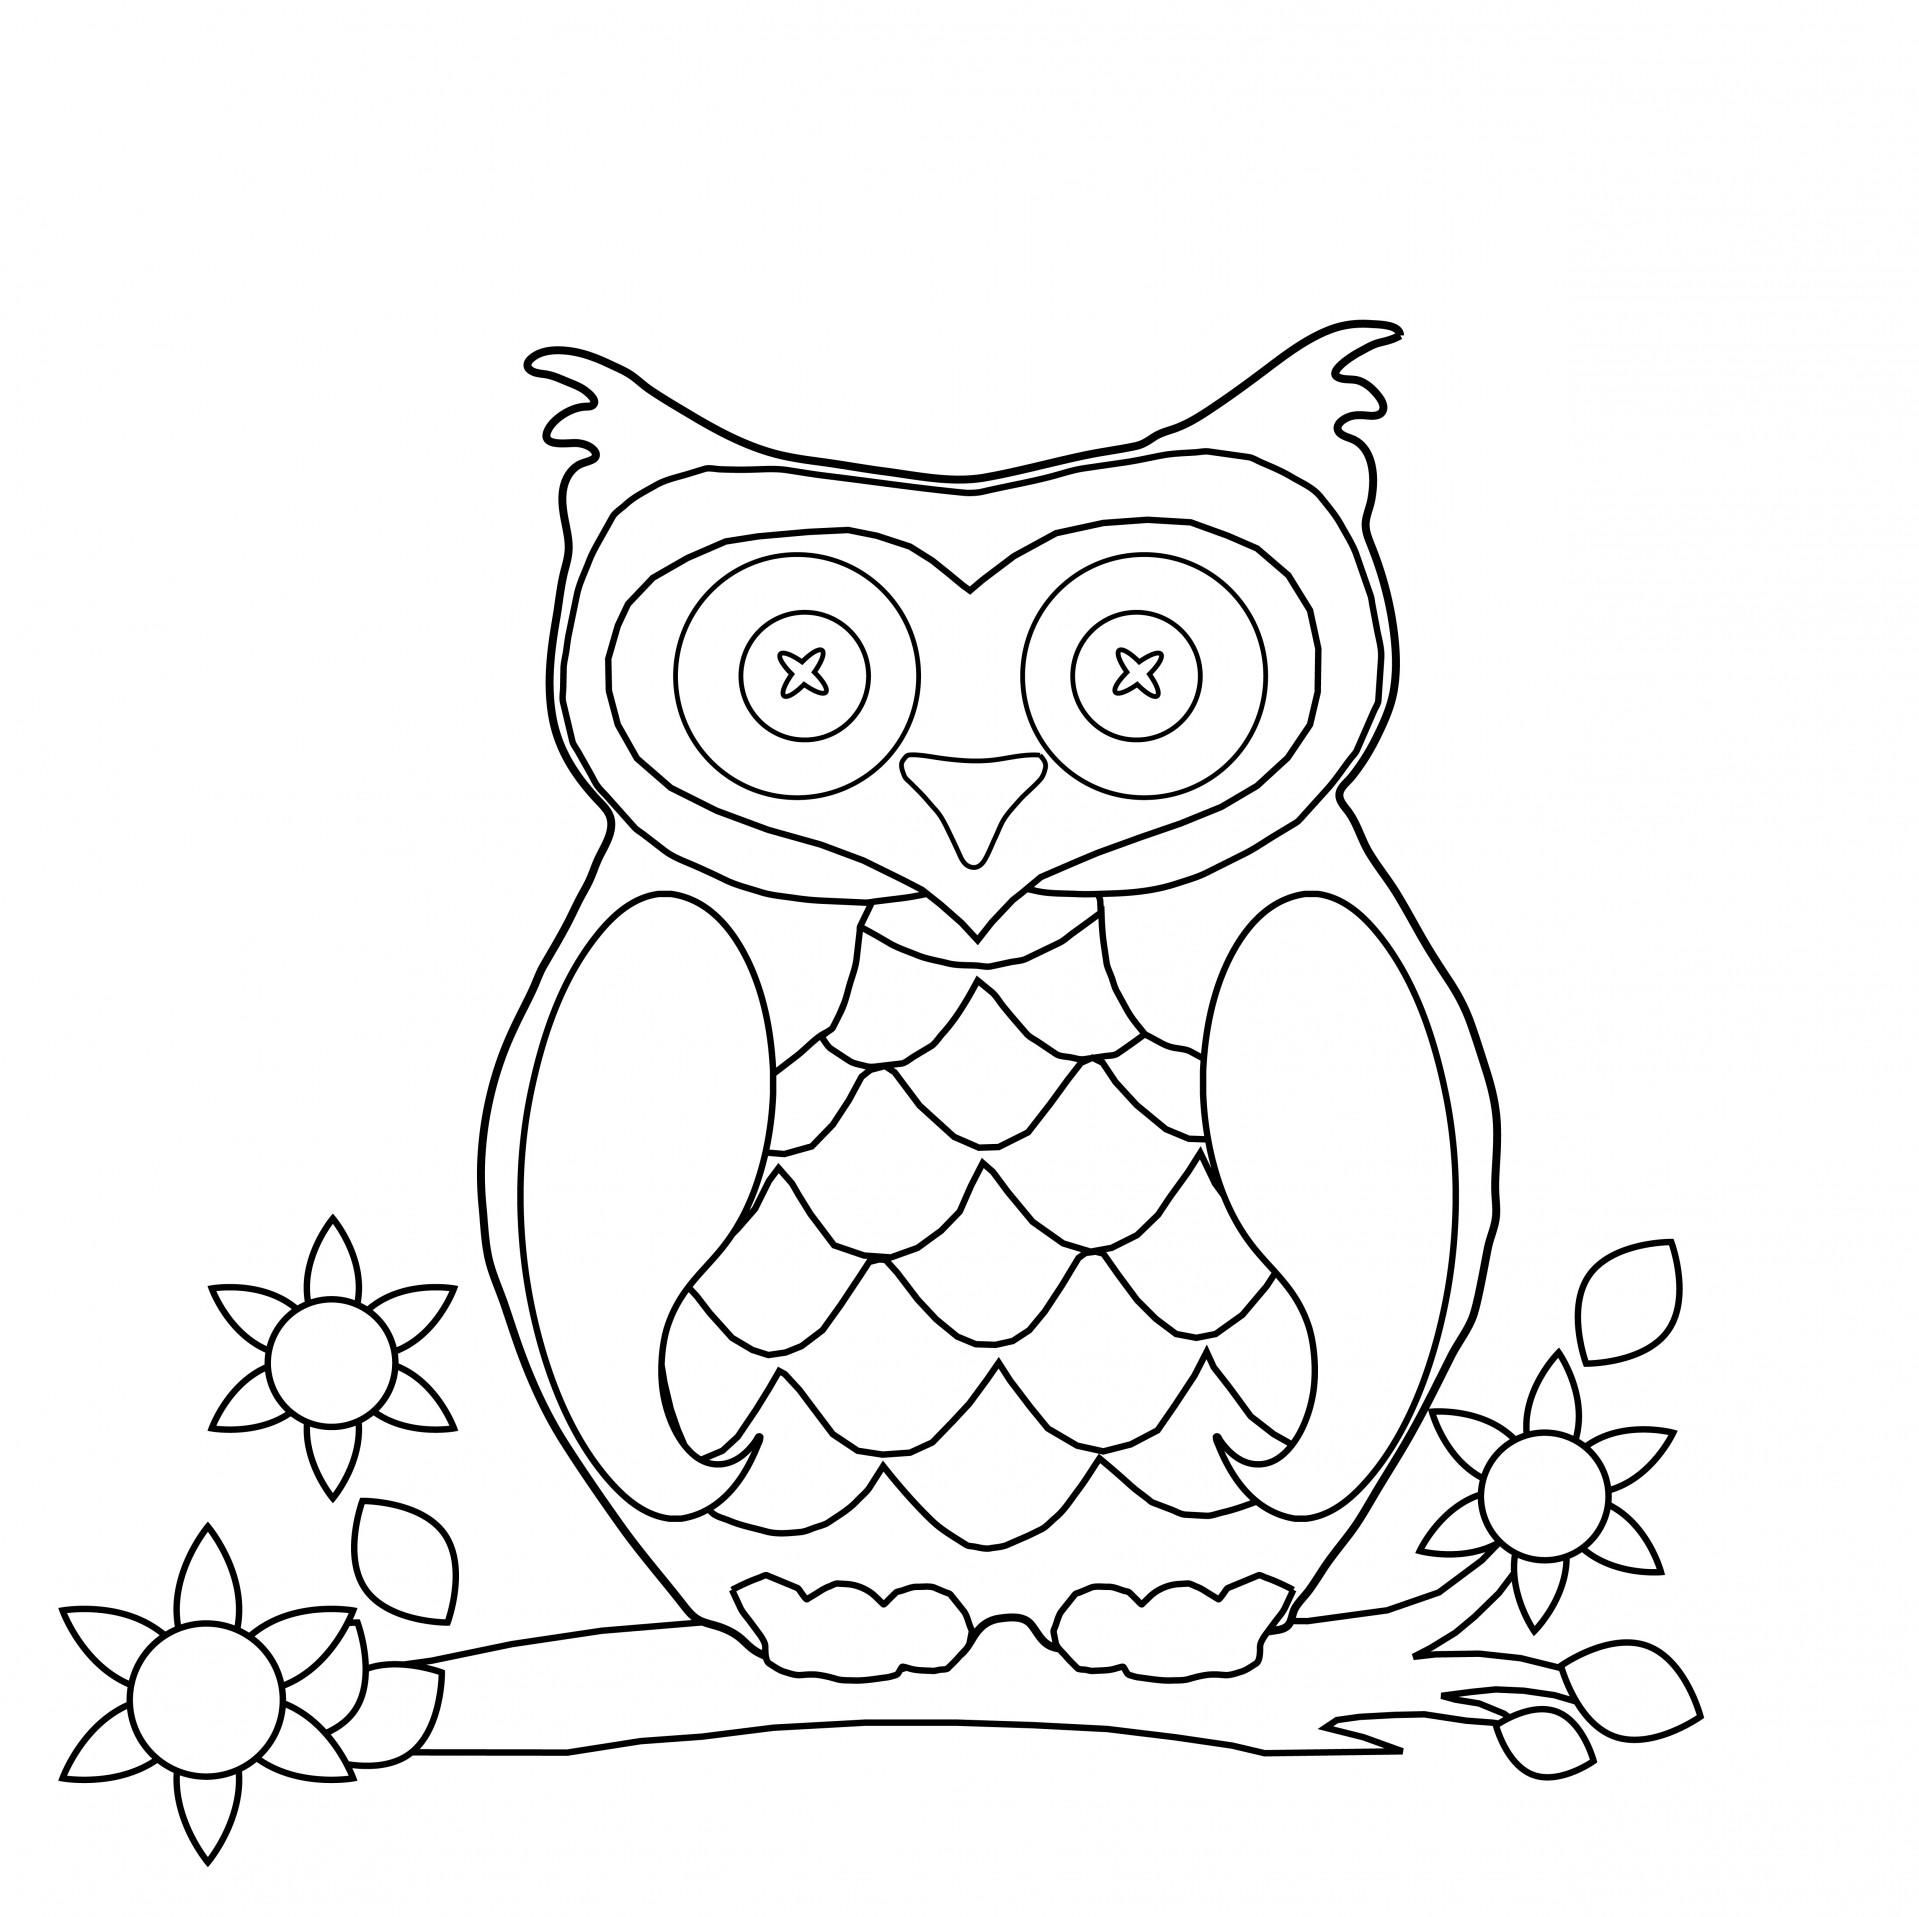 childrens colouring pictures zebra coloring pages free printable kids coloring pages colouring pictures childrens